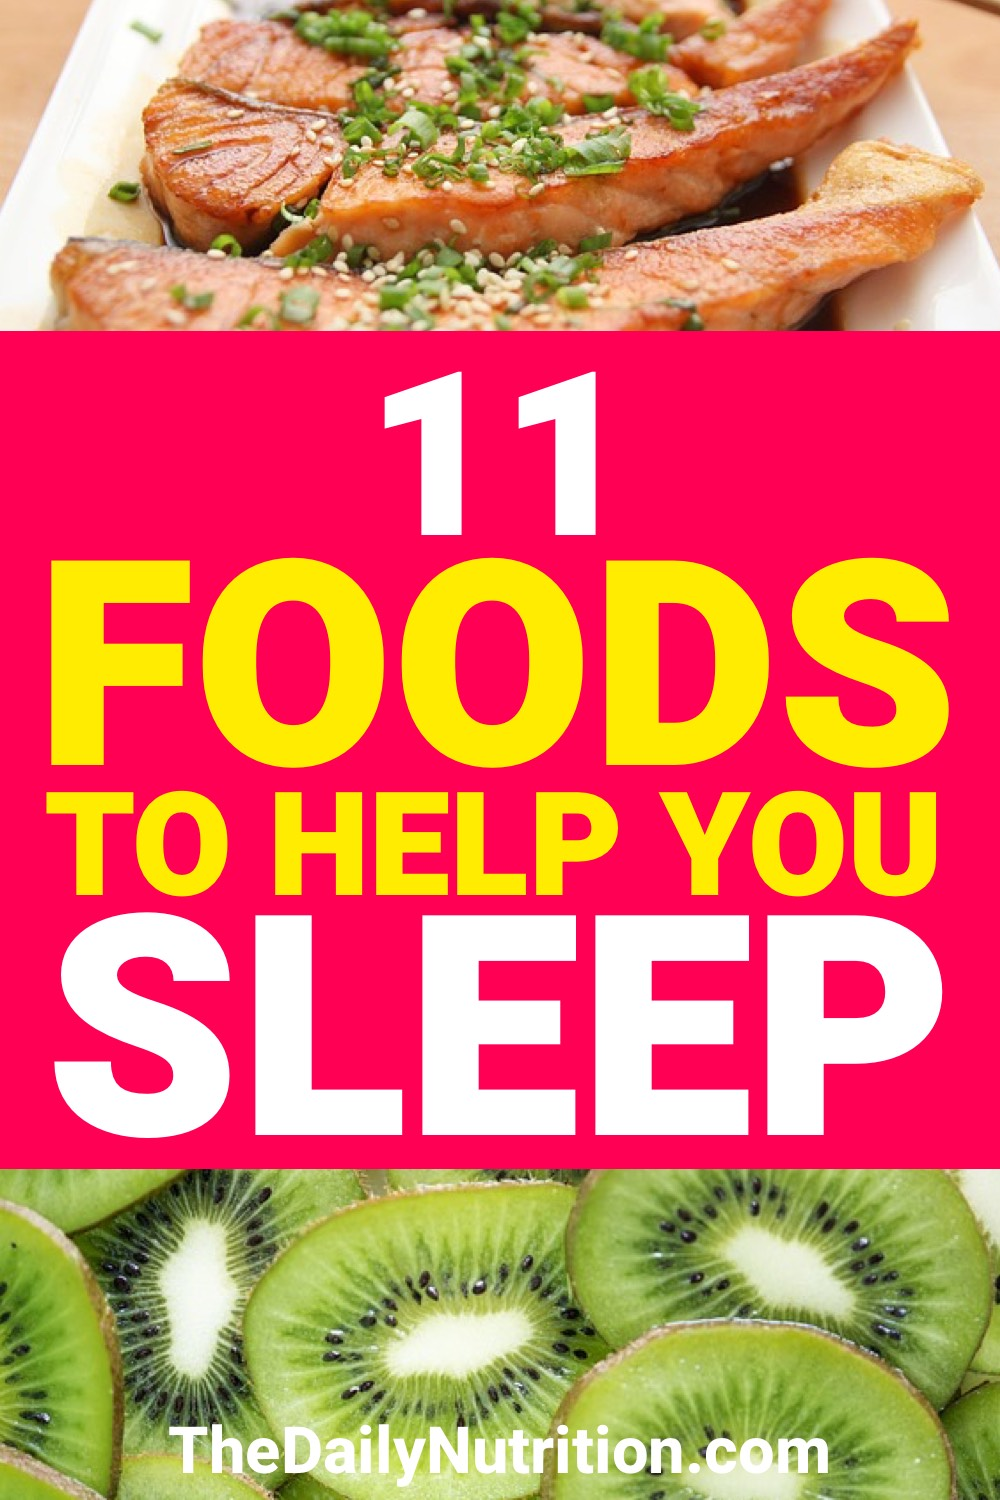 When you struggle to get the sleep you want, you aren't happy. Here are 11 foods that can help you get the sleep you want.